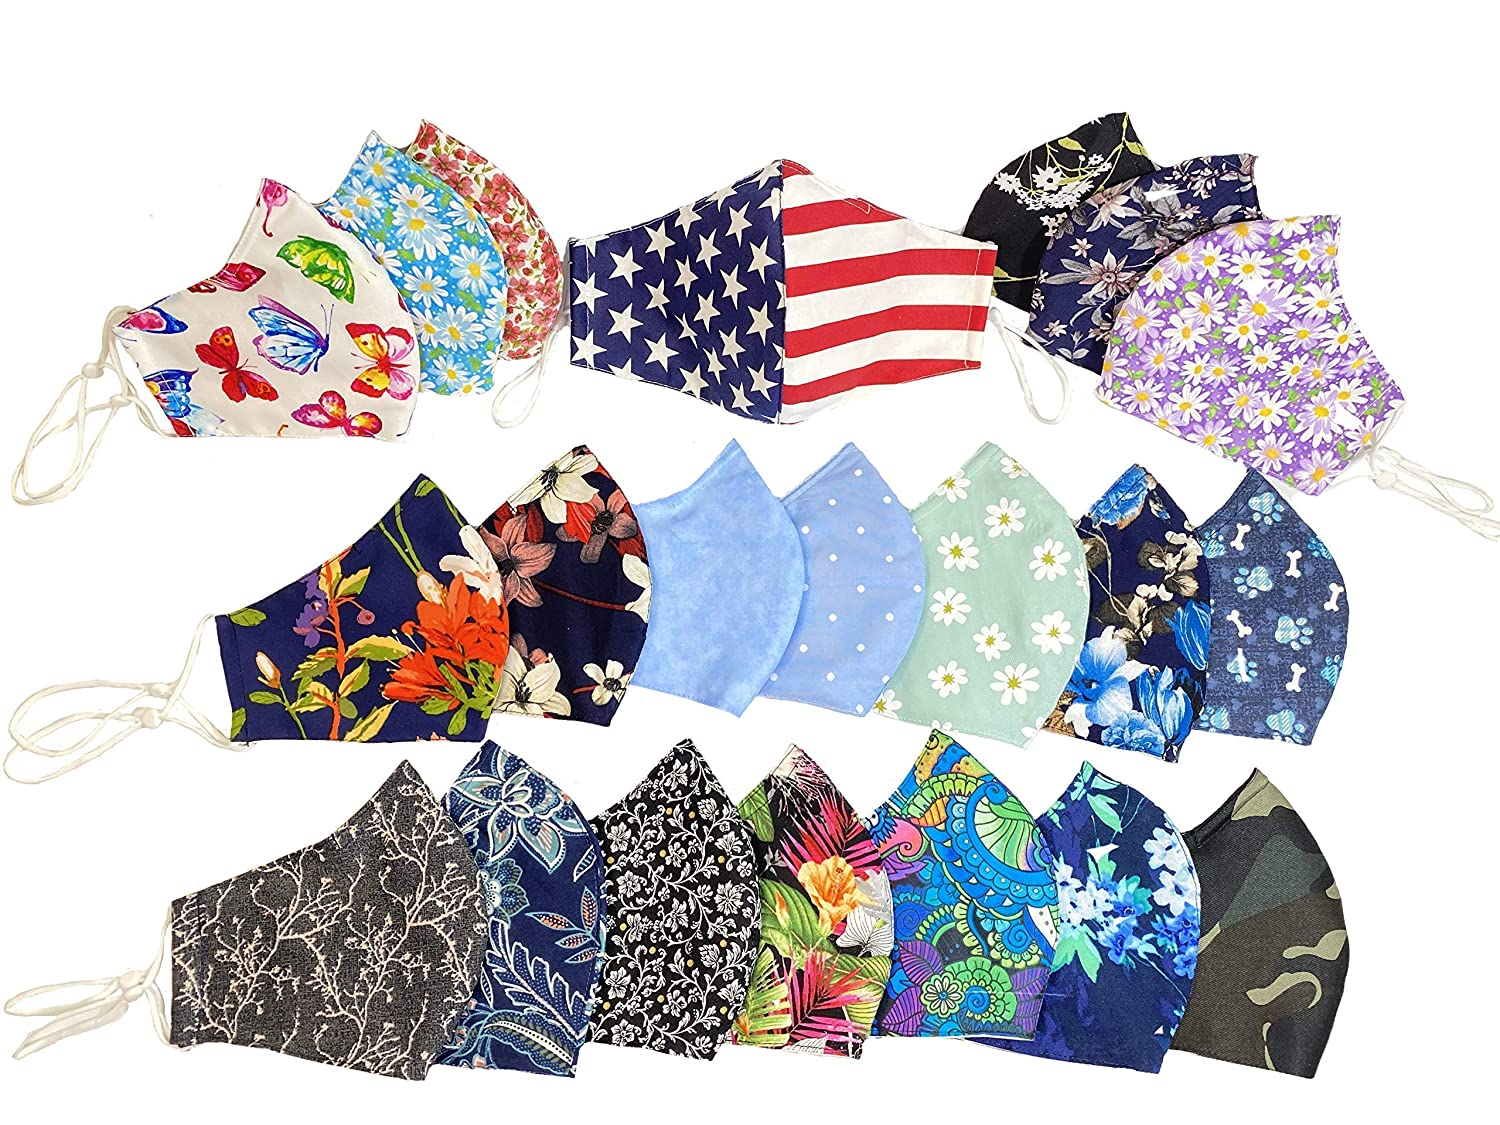 Popular overseas USA Cloth Face Mask Adult Colorado Springs Mall Cotton Coverings 100%